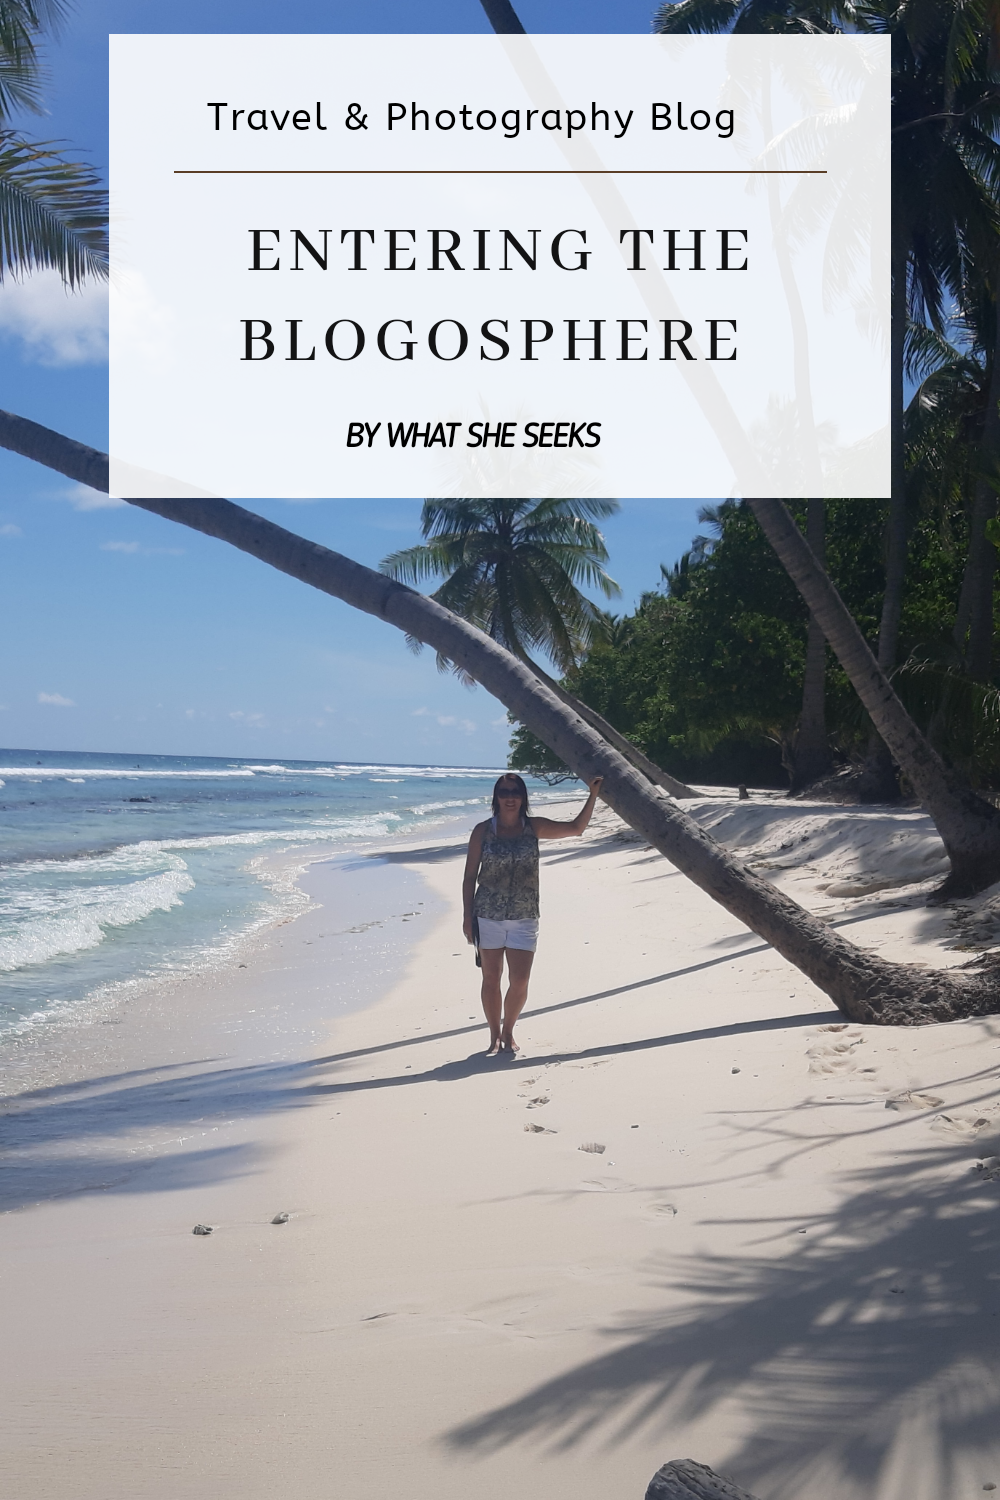 Why i started a new Travel Photography blog, my personal journey and dreams in the blogosphere,